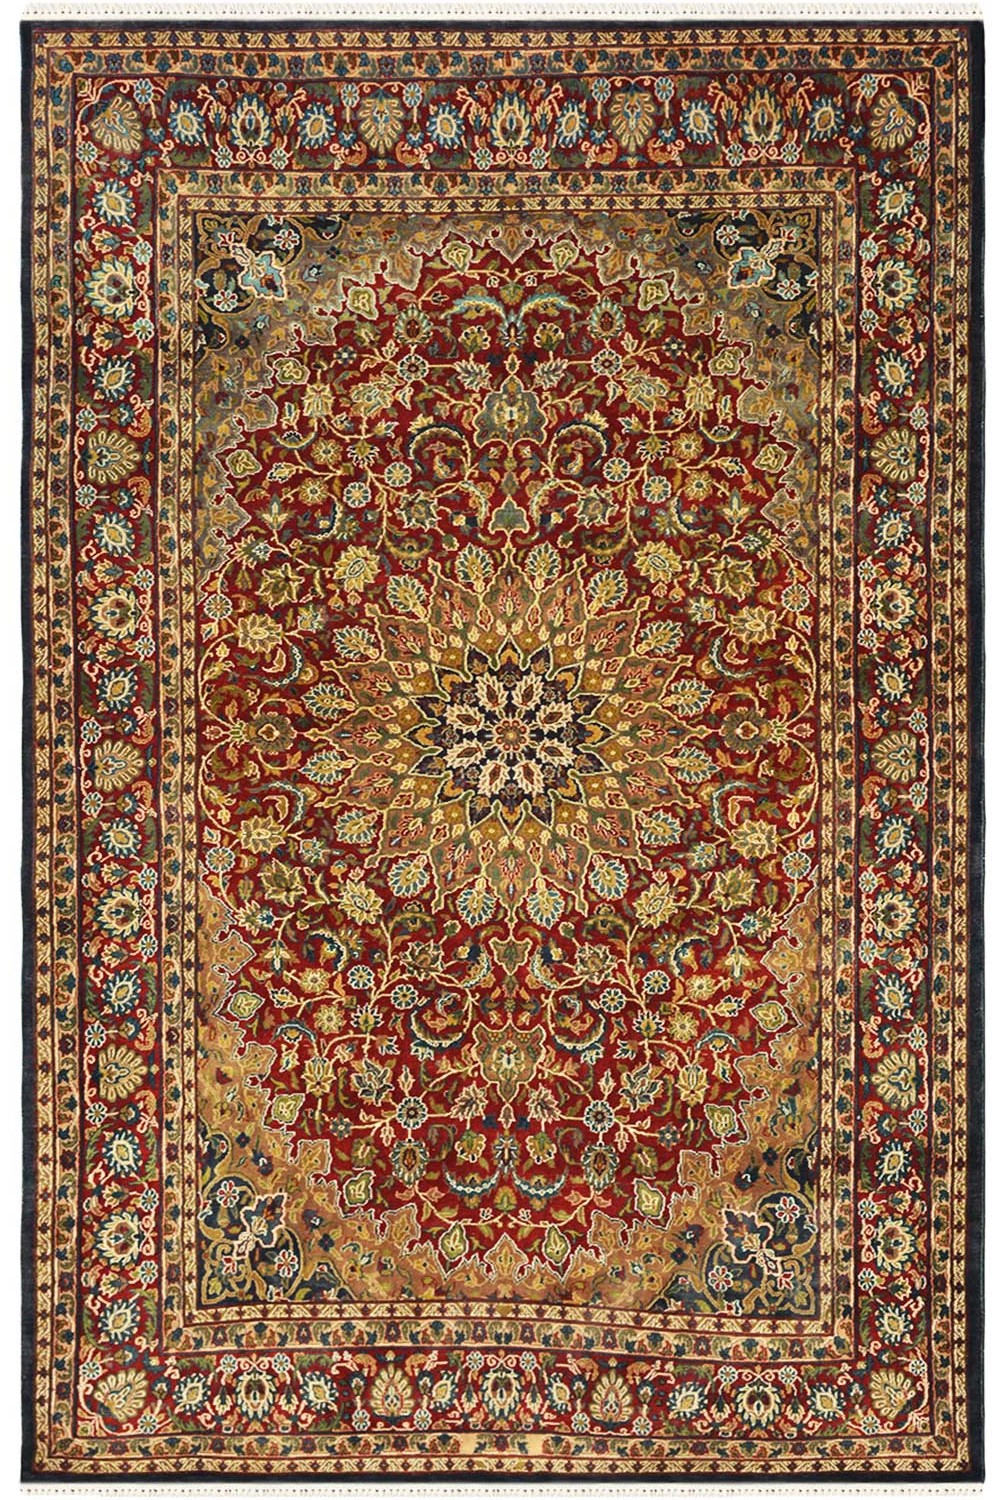 5 10 X 9 Mesched Chakra Rug Wool Rugs For Sale Online